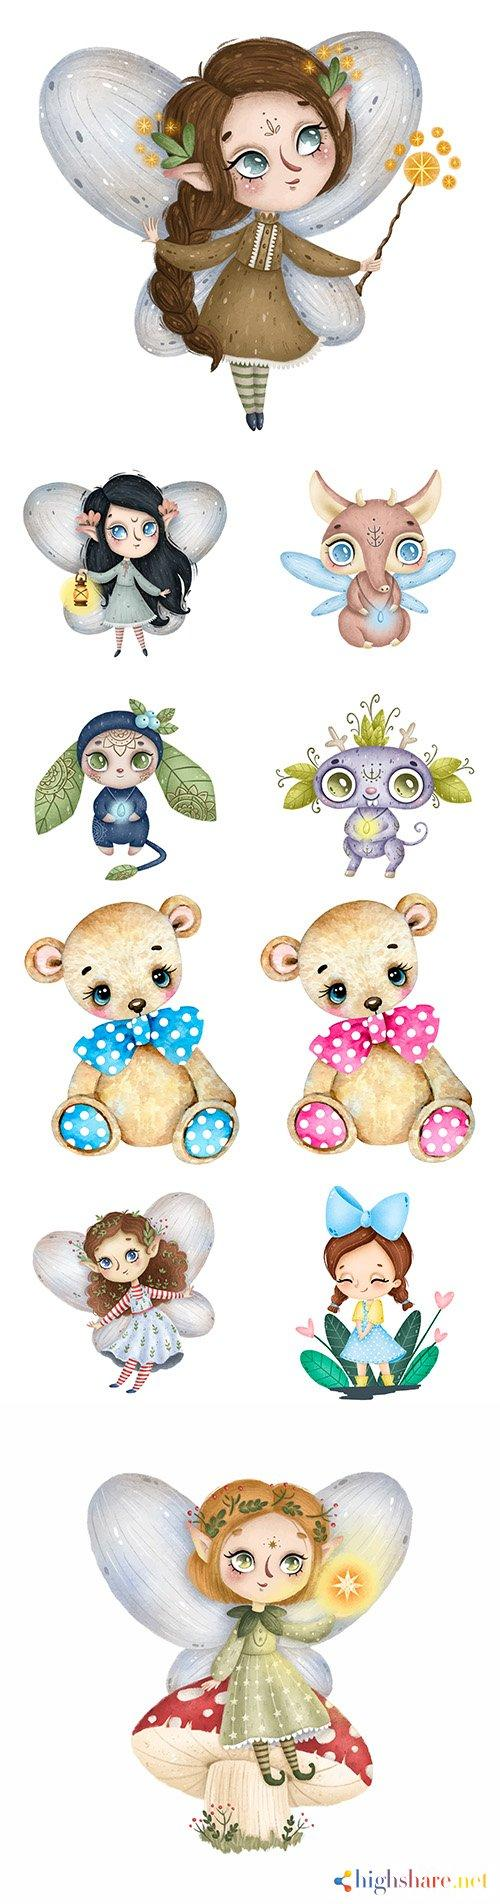 cute little forest fairy with magic wand and funny characters 5f3febaa5a869 - Cute little forest fairy with magic wand and funny characters